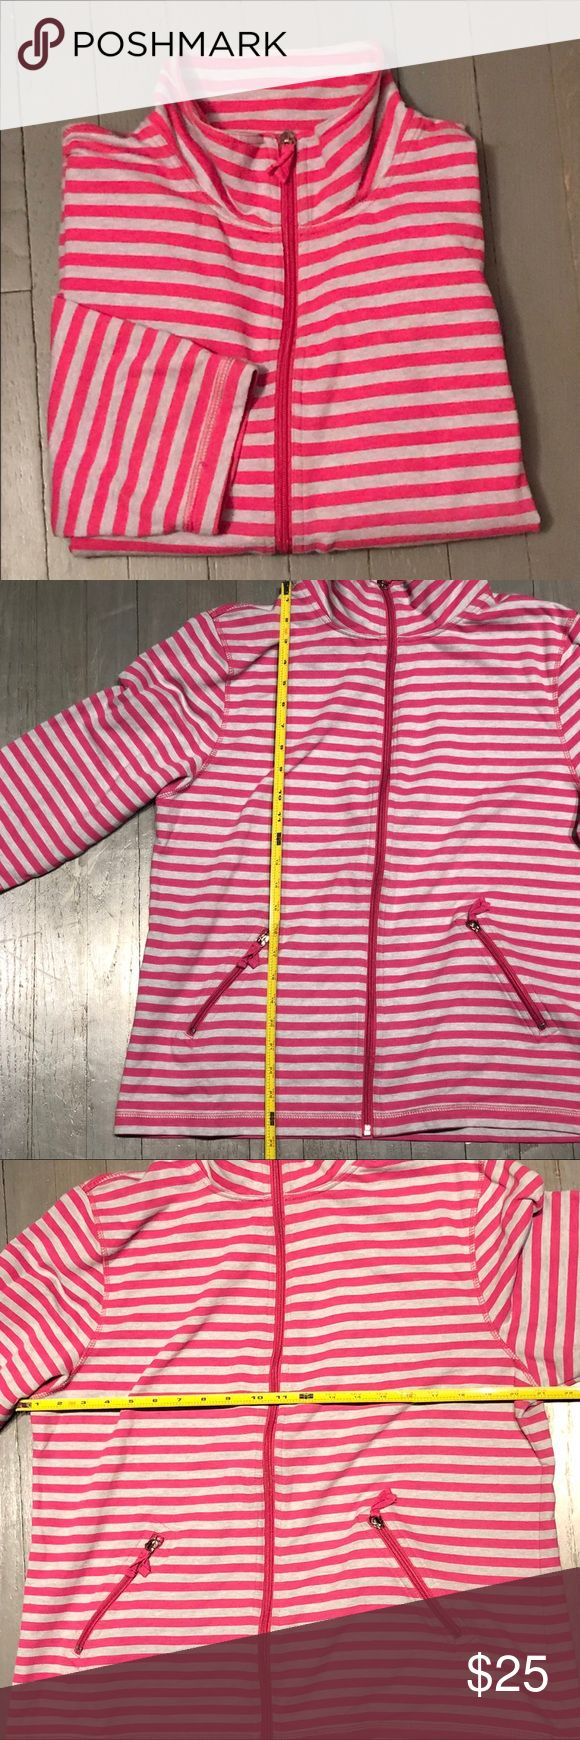 Good Fortune Stripe Zip 3/4 Sleeve Pullover Good Fortune Pink and Gray Horizontal Striped Full Zip Pullover. Two side zip pockets. 3/4 sleeves. Two Slant Zip Front Pockets. Measurements in pictures. 60% Cotton 40% Polyester Made in Vietnam RN 122942 Valentines Day Perfect Good Fortune Tops Sweatshirts & Hoodies